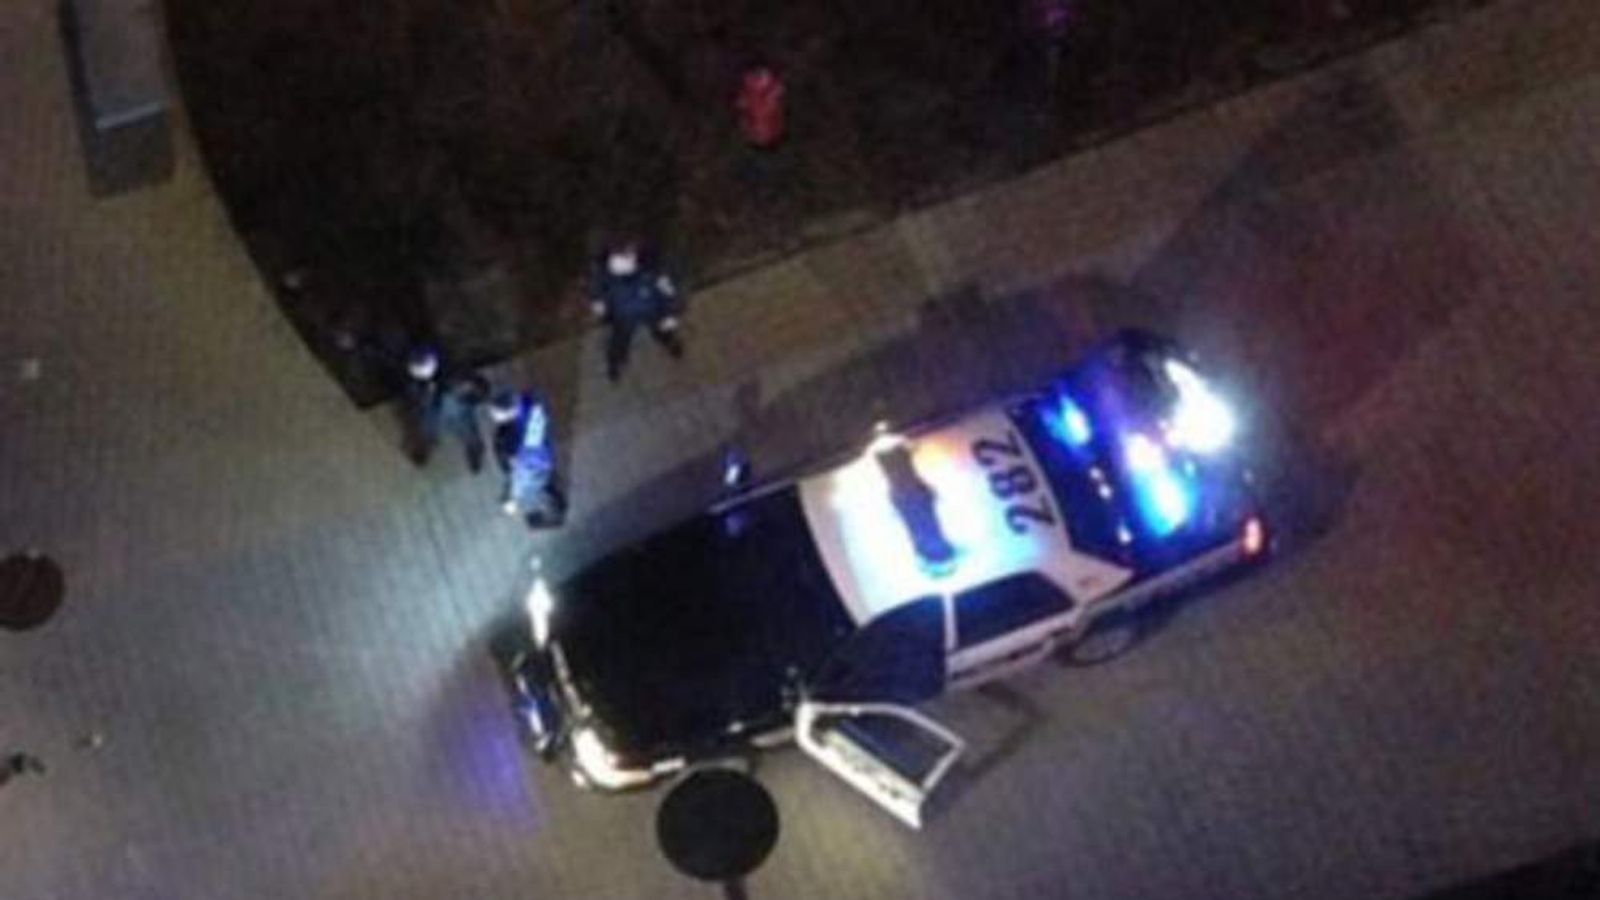 Scene Of Shooting At MIT Massachusetts Institute Of Technology